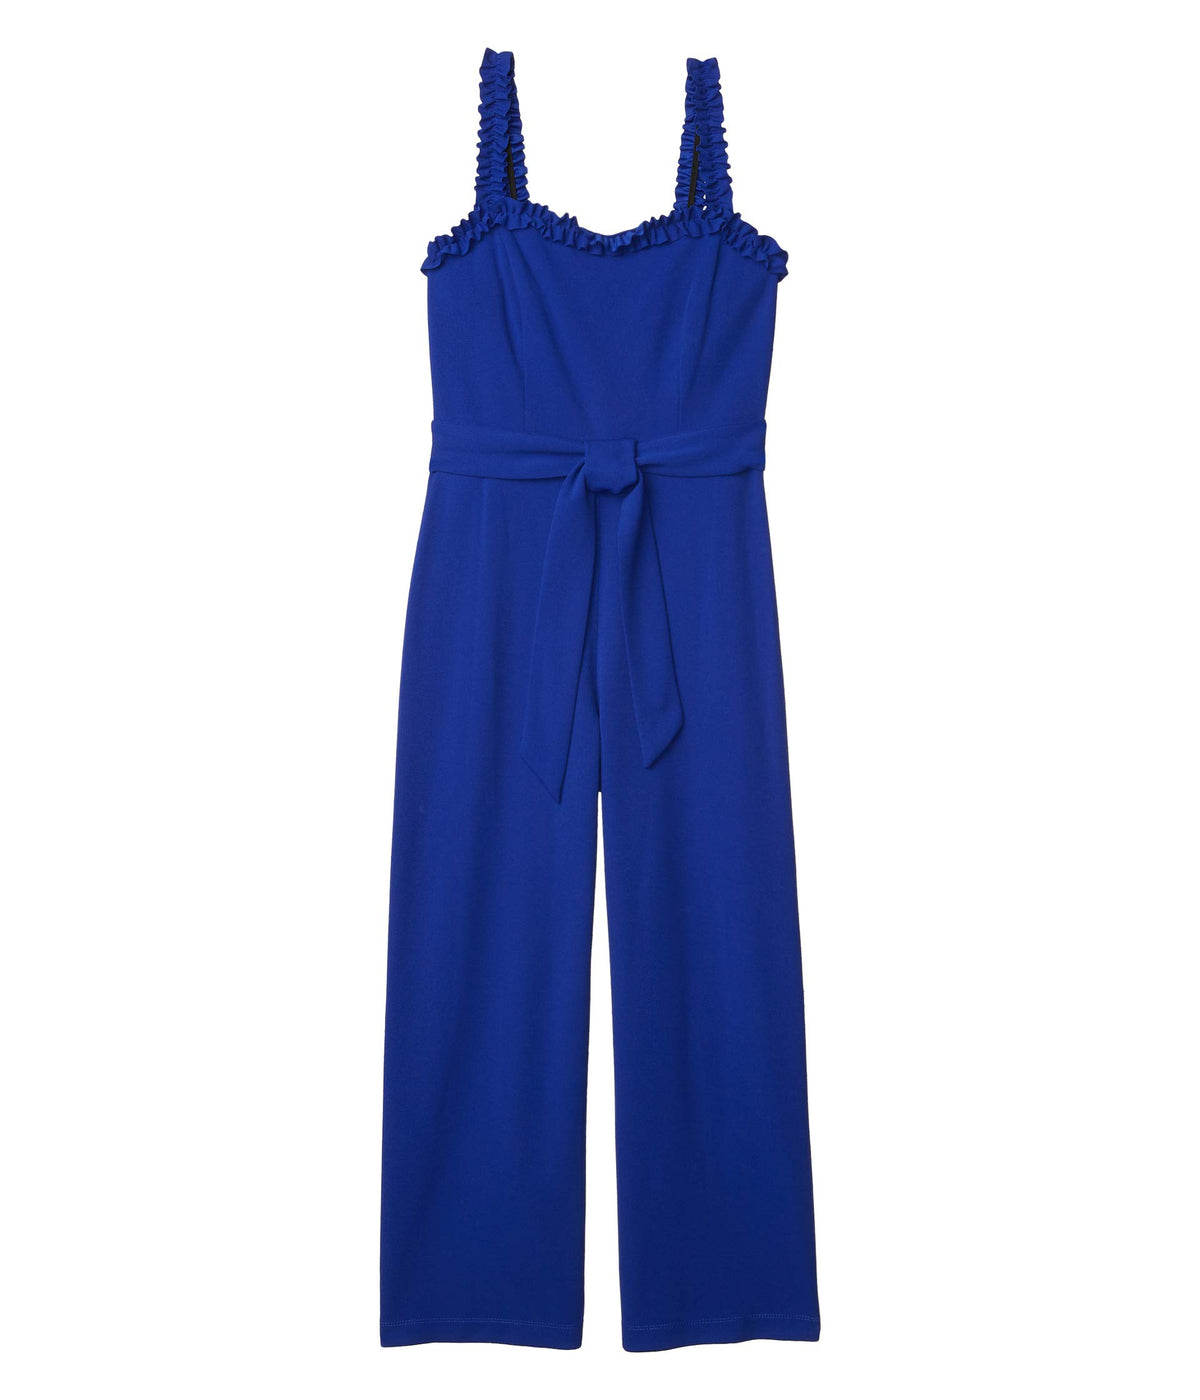 Cropped Jumpsuit with Ruffle Strap Detail